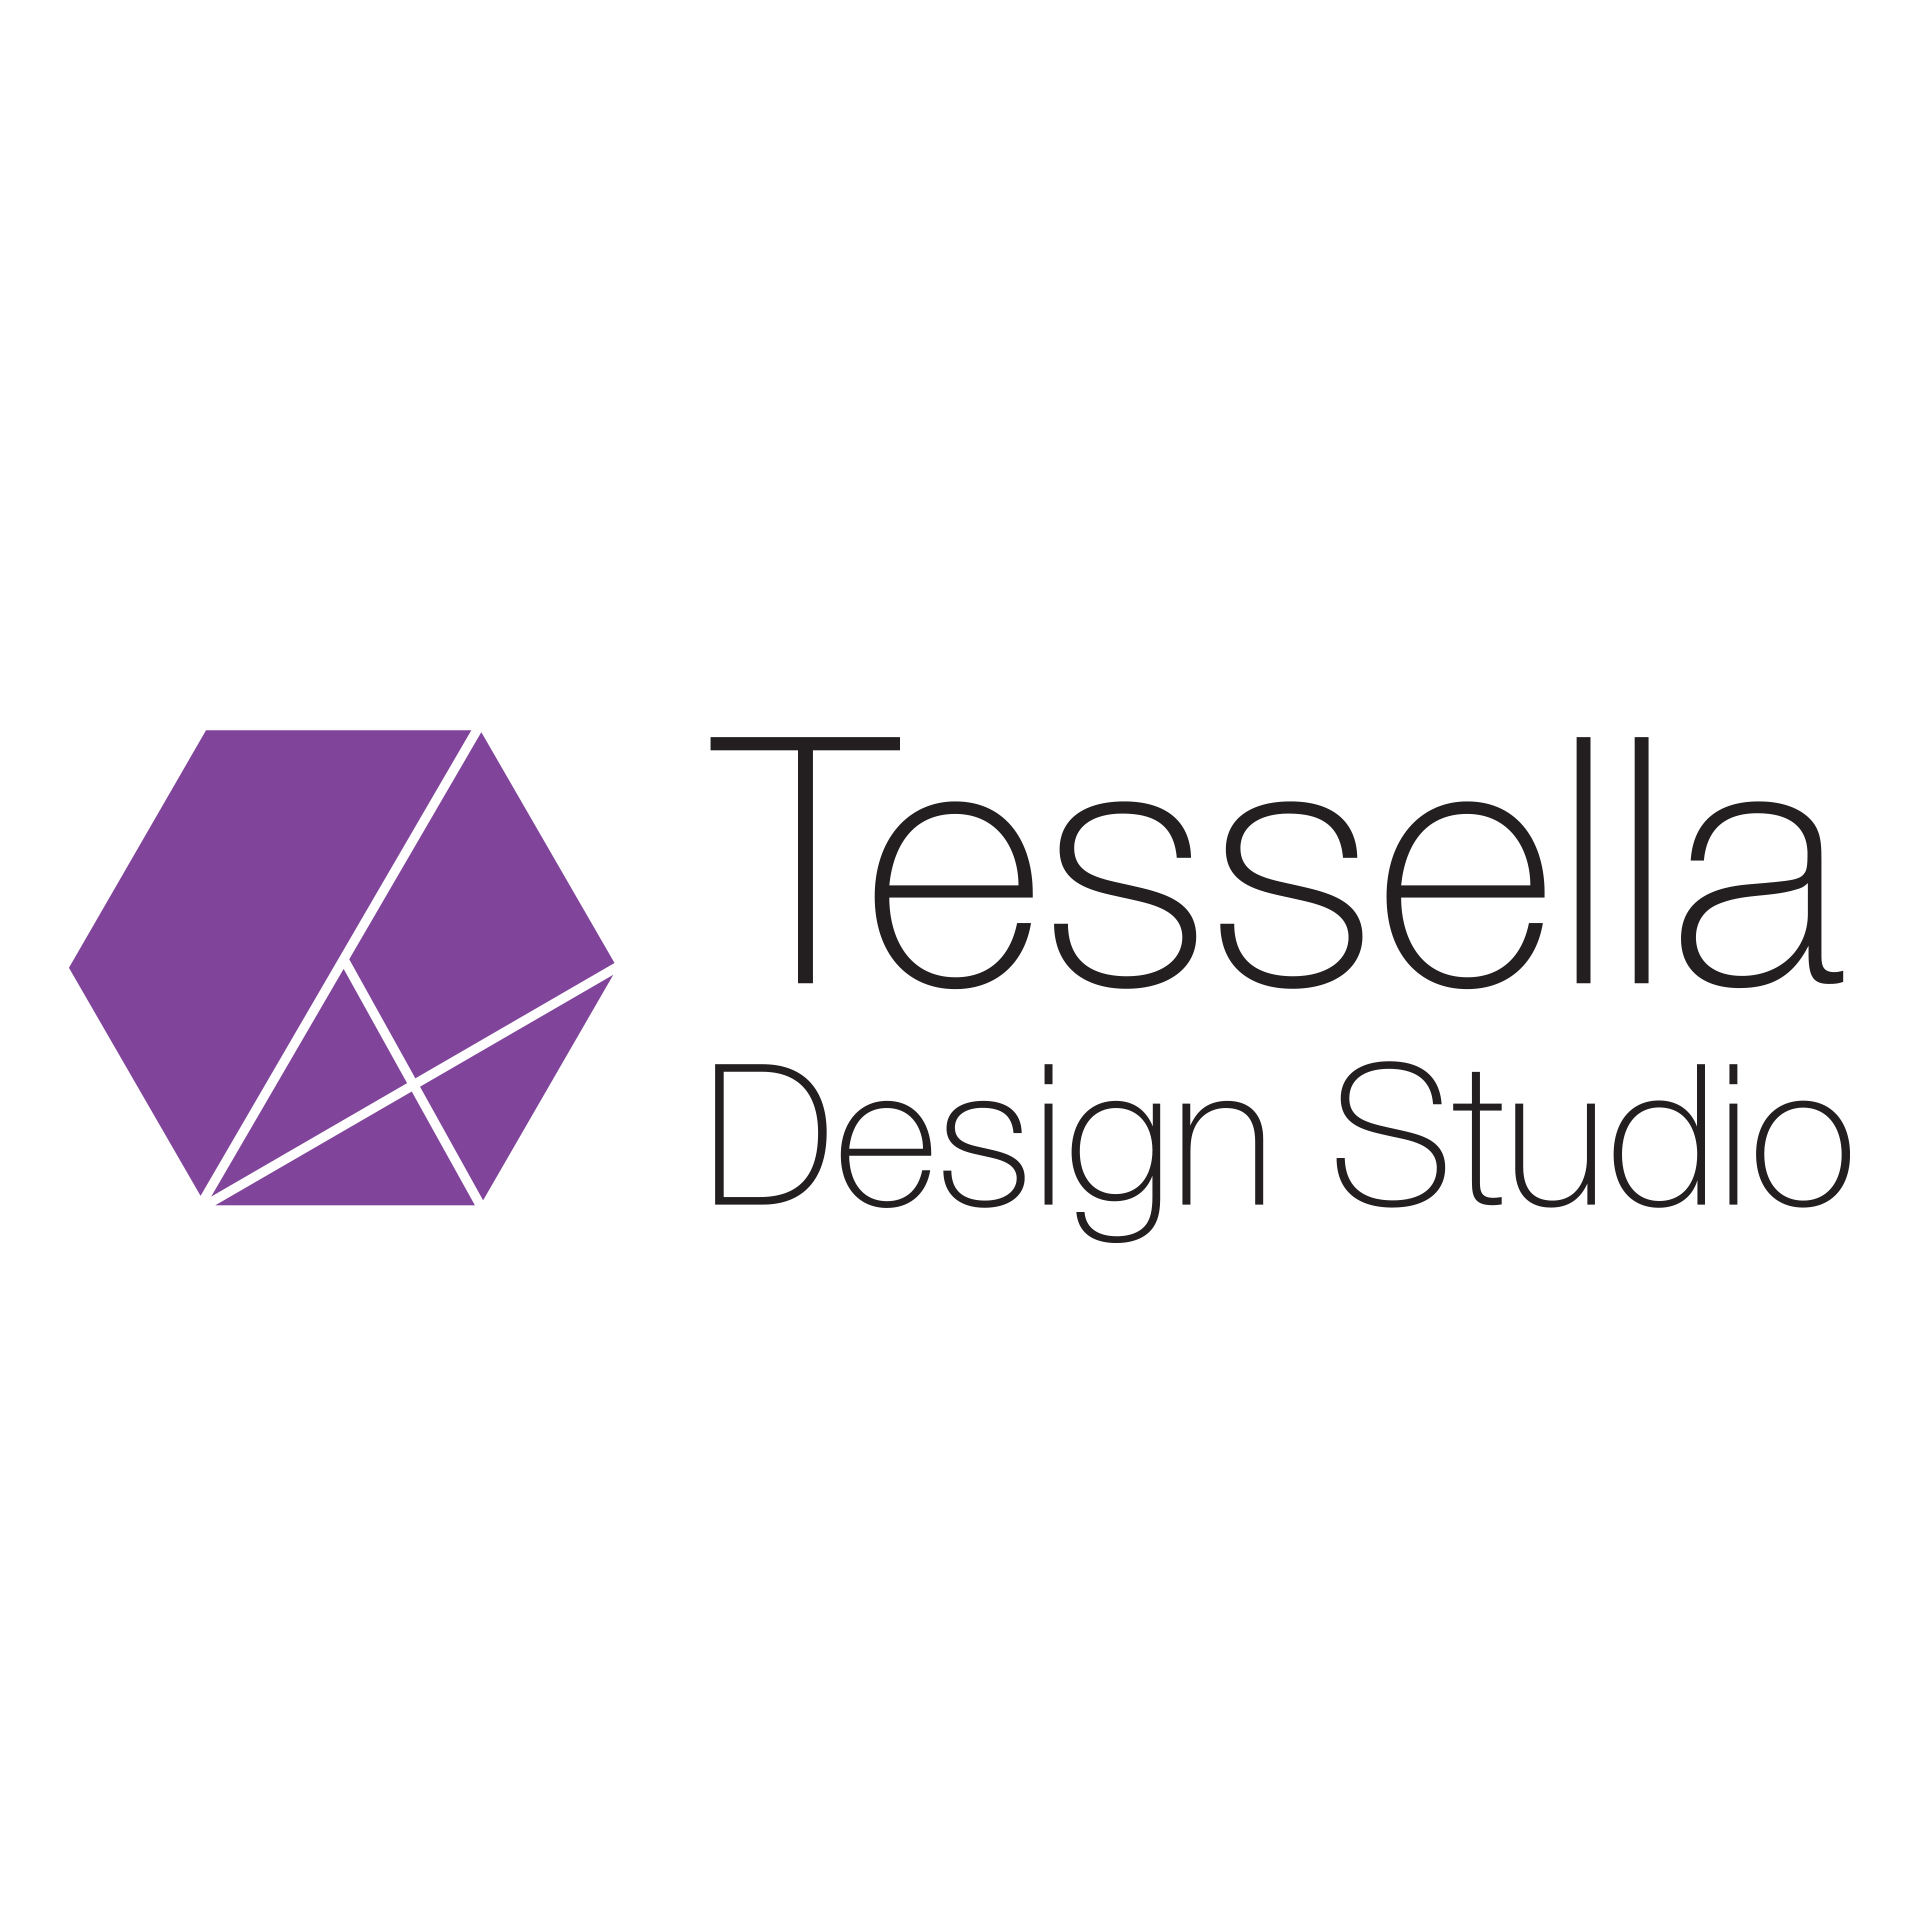 Tessella Design Studio